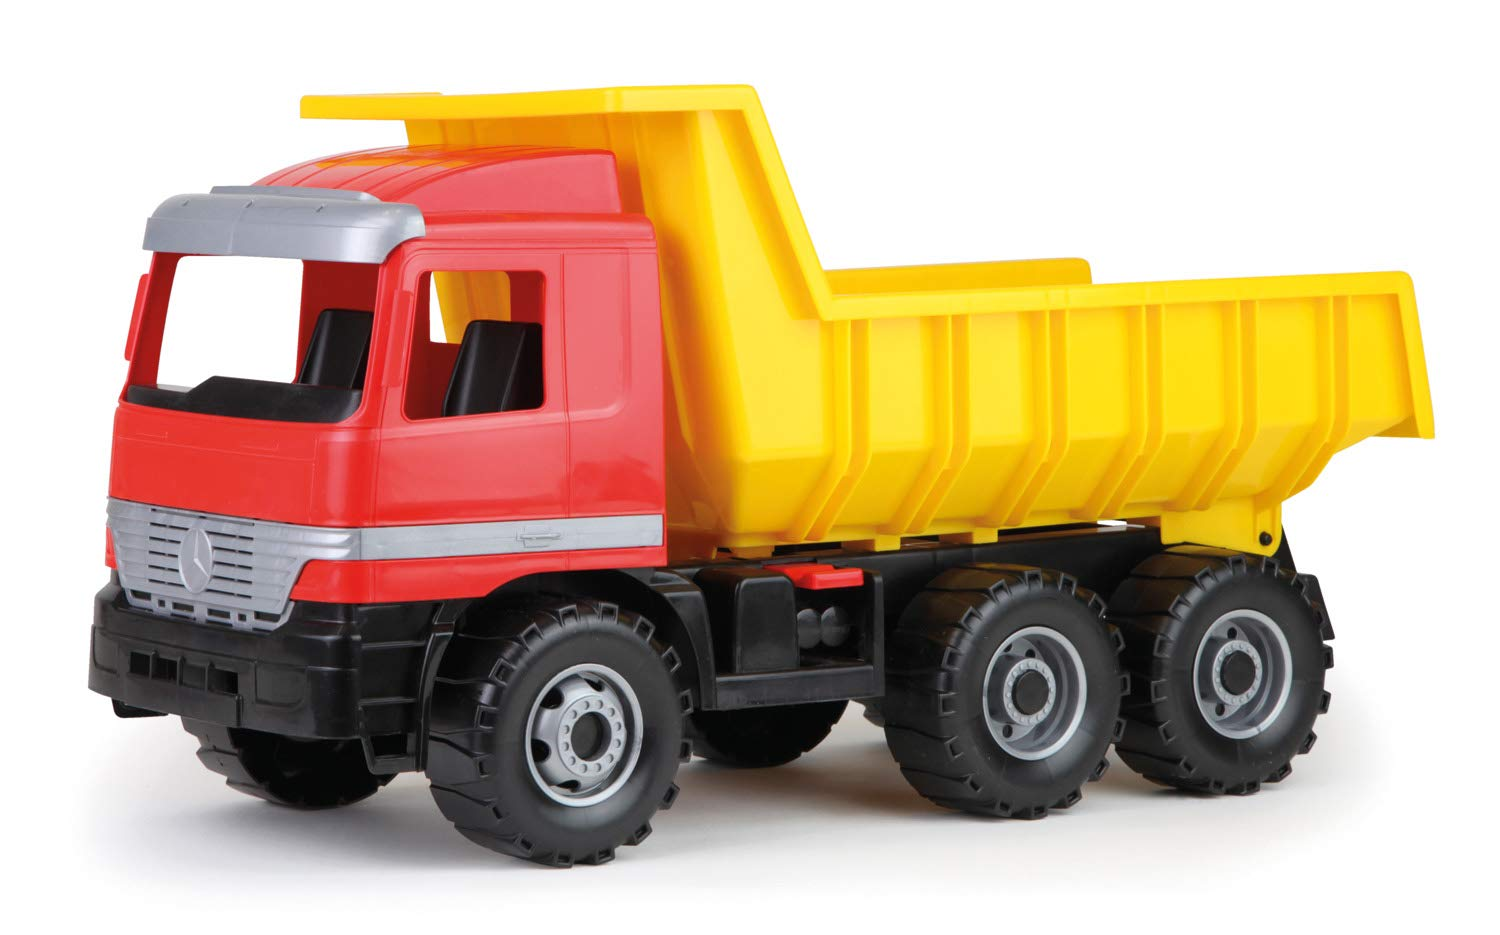 Lena 02166 - Strong Giant Garbage Truck, Orange Gray, about 72 cm